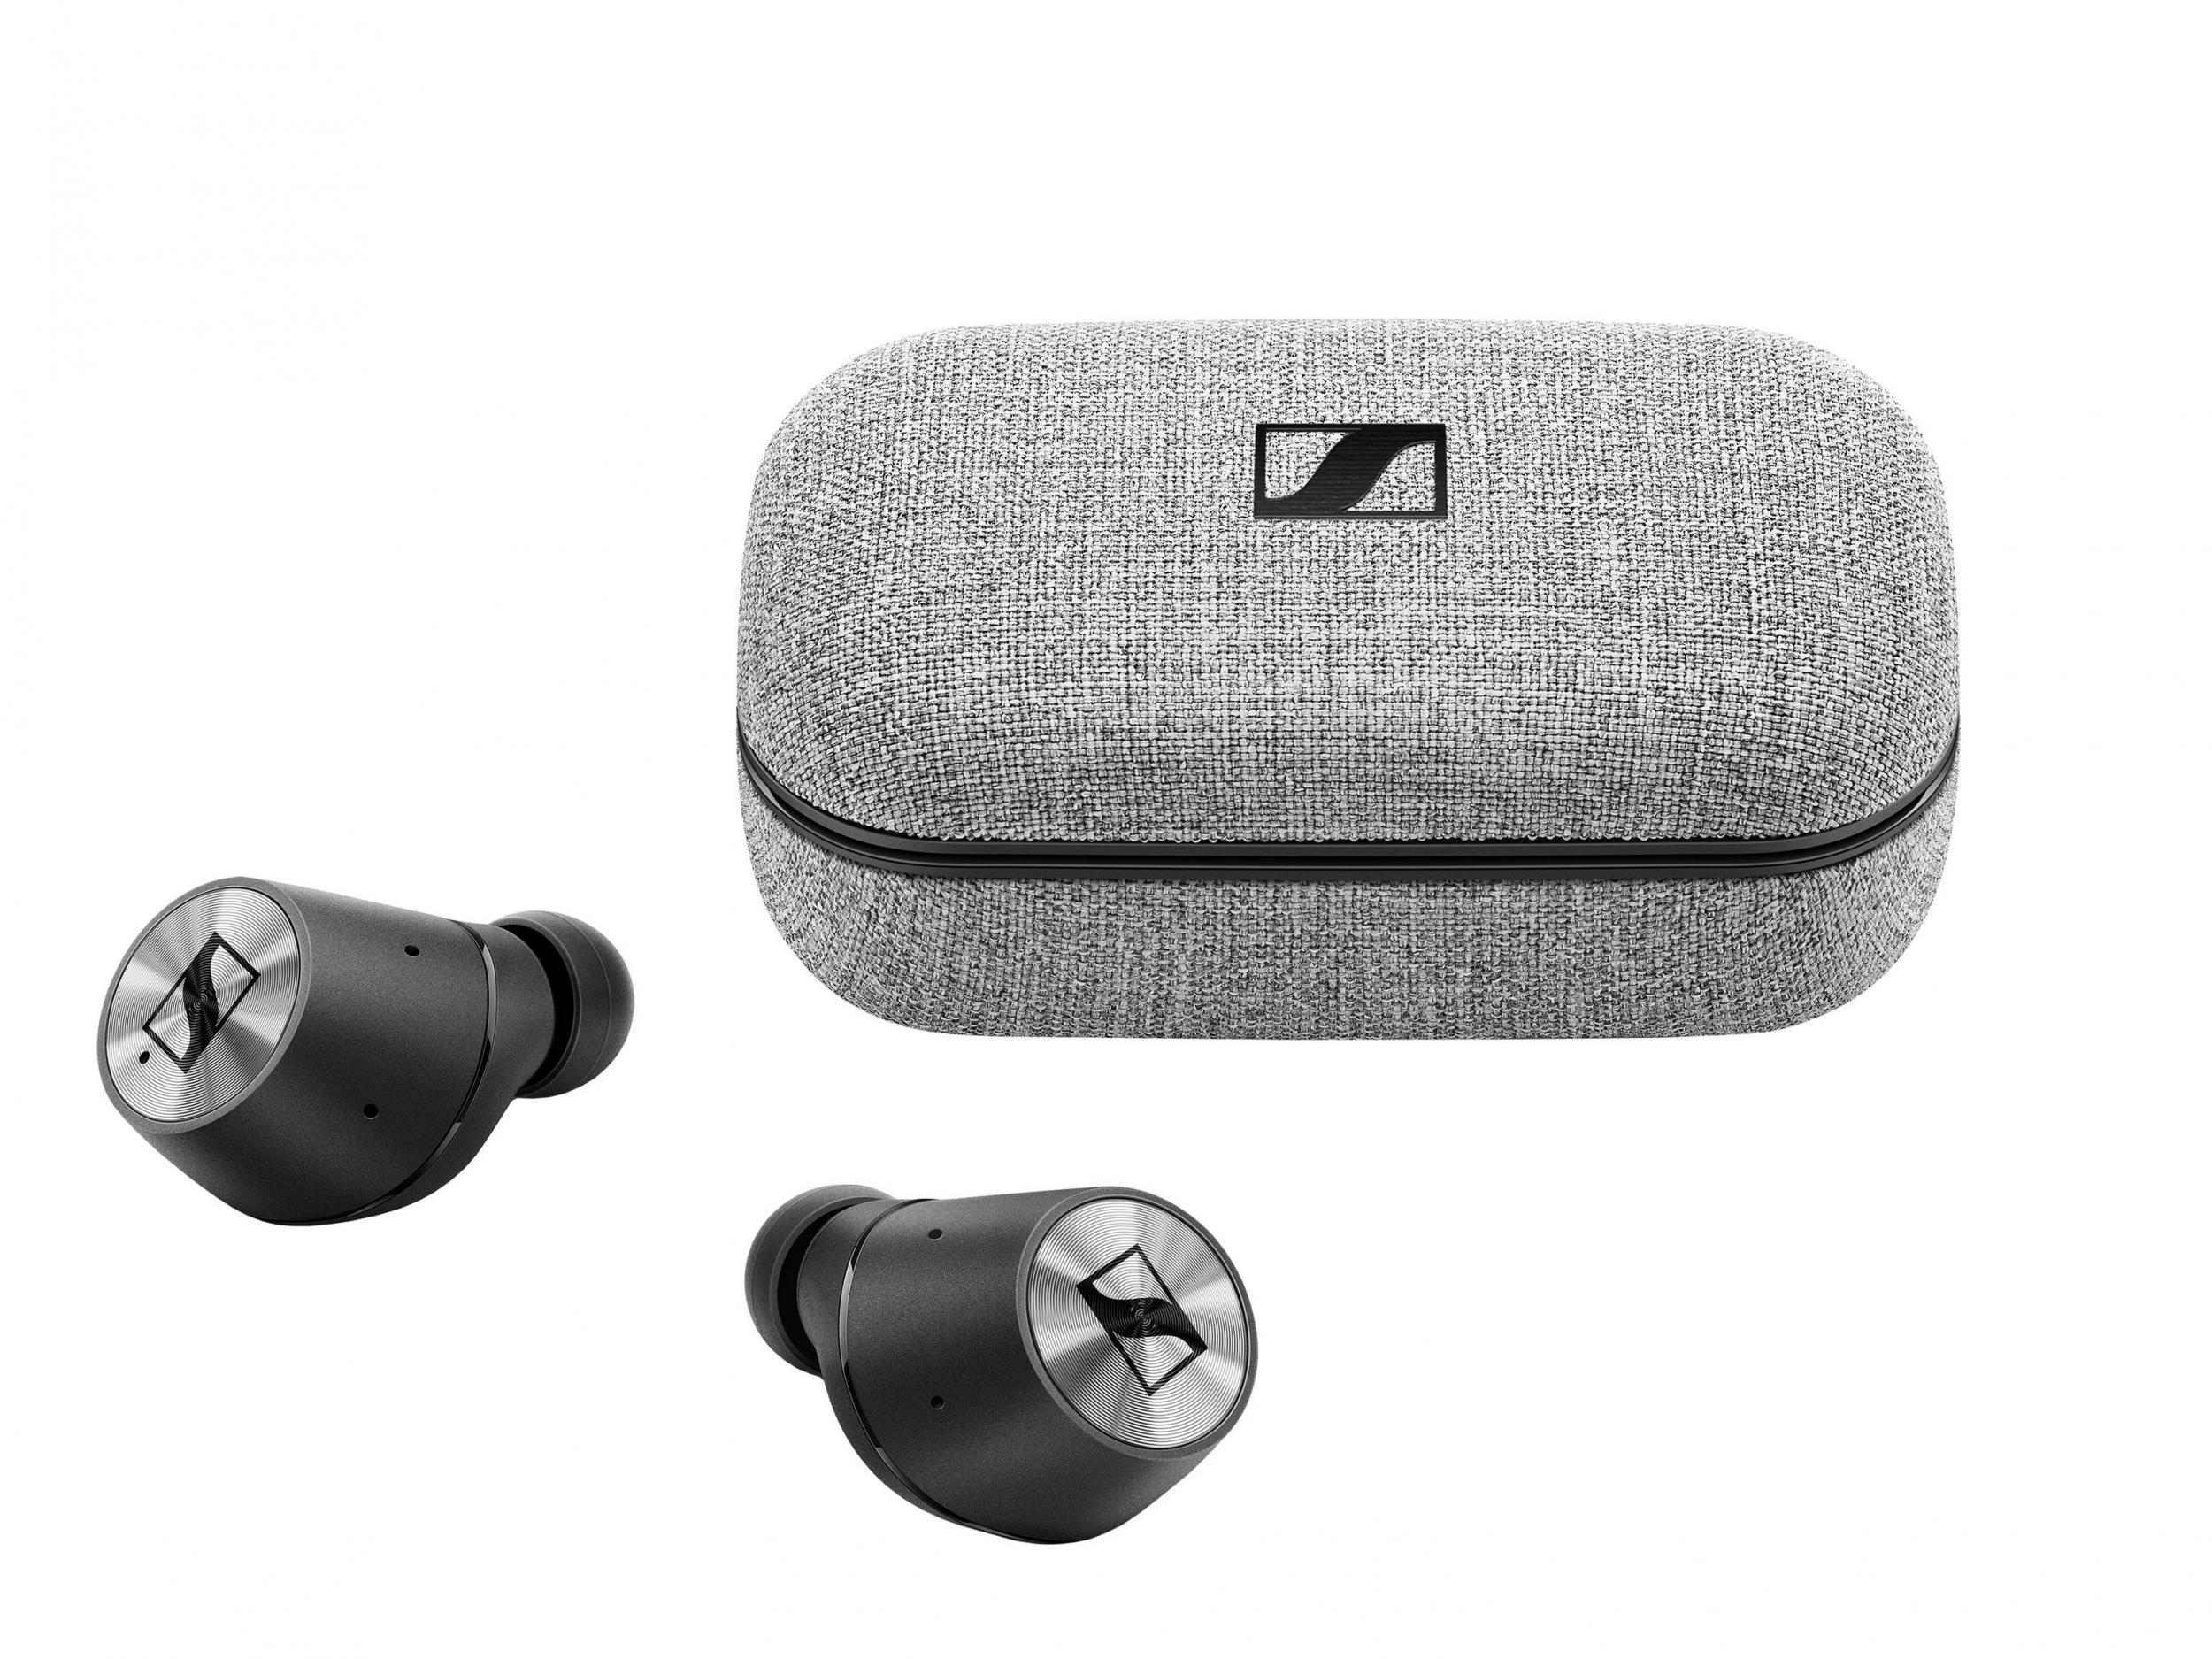 Best true wireless earphones, earbuds and hearables that